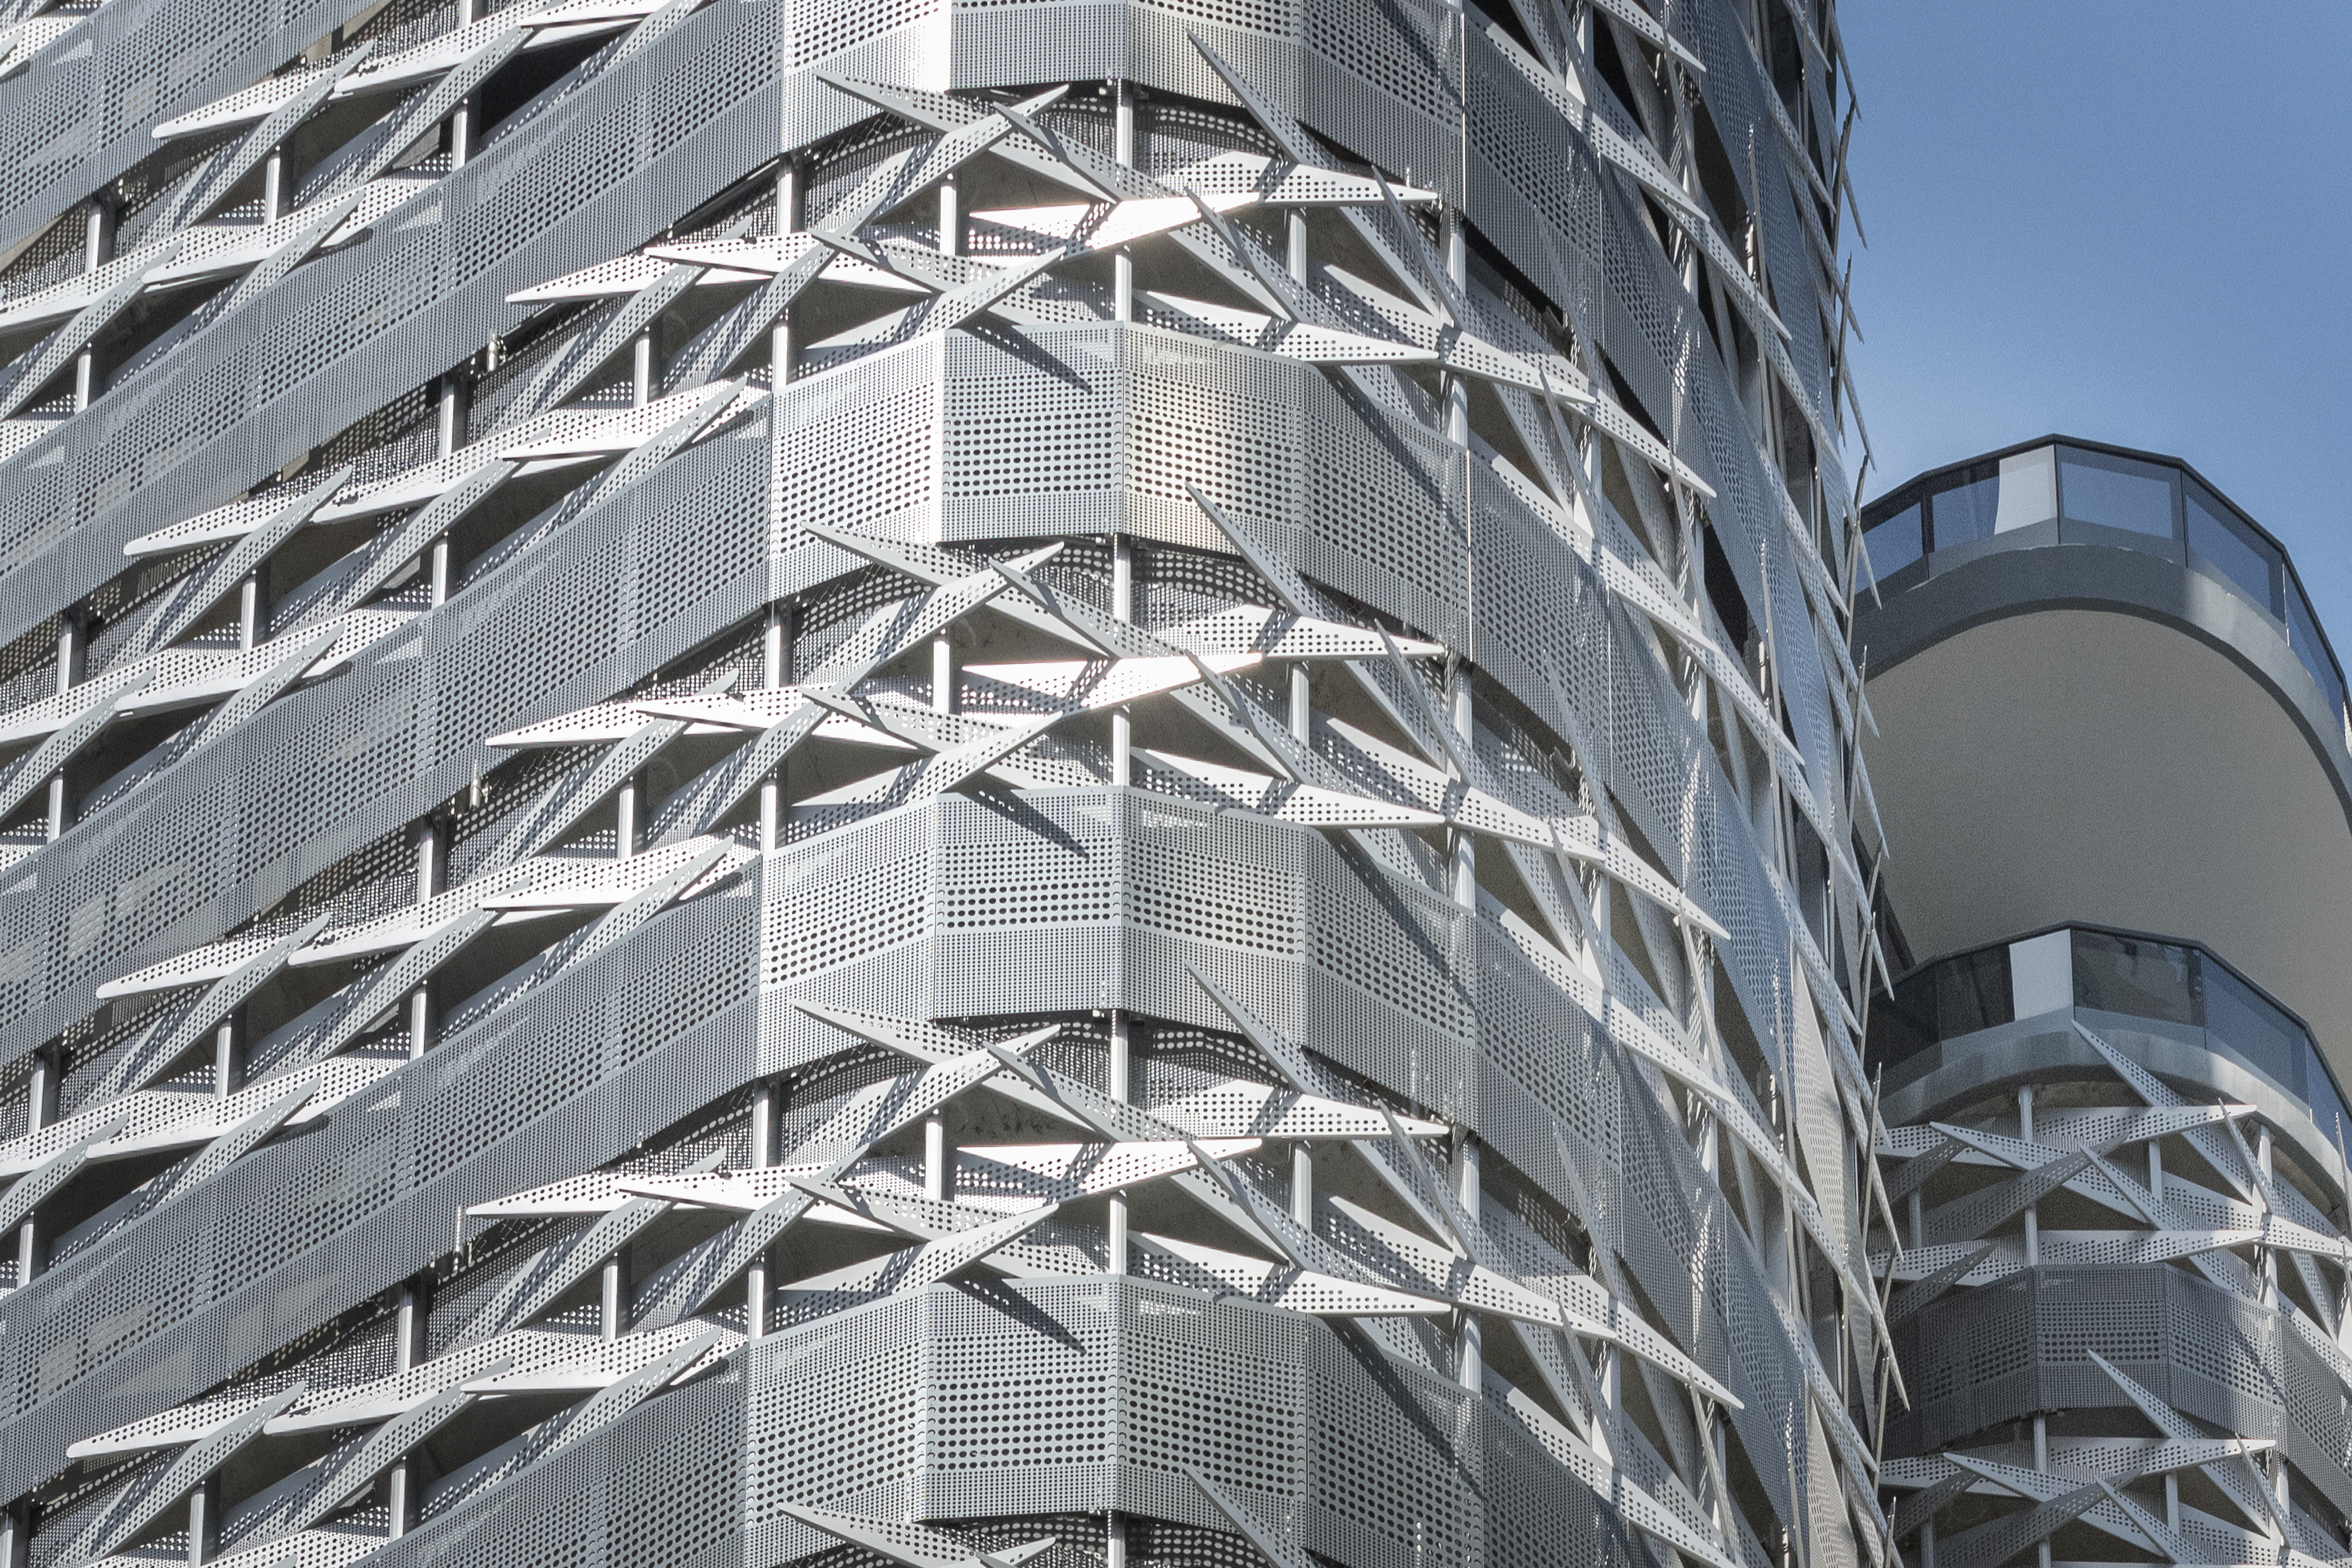 Custom perforated-metal facade for Brickell Flatiron in Miami, produced by Zahner.